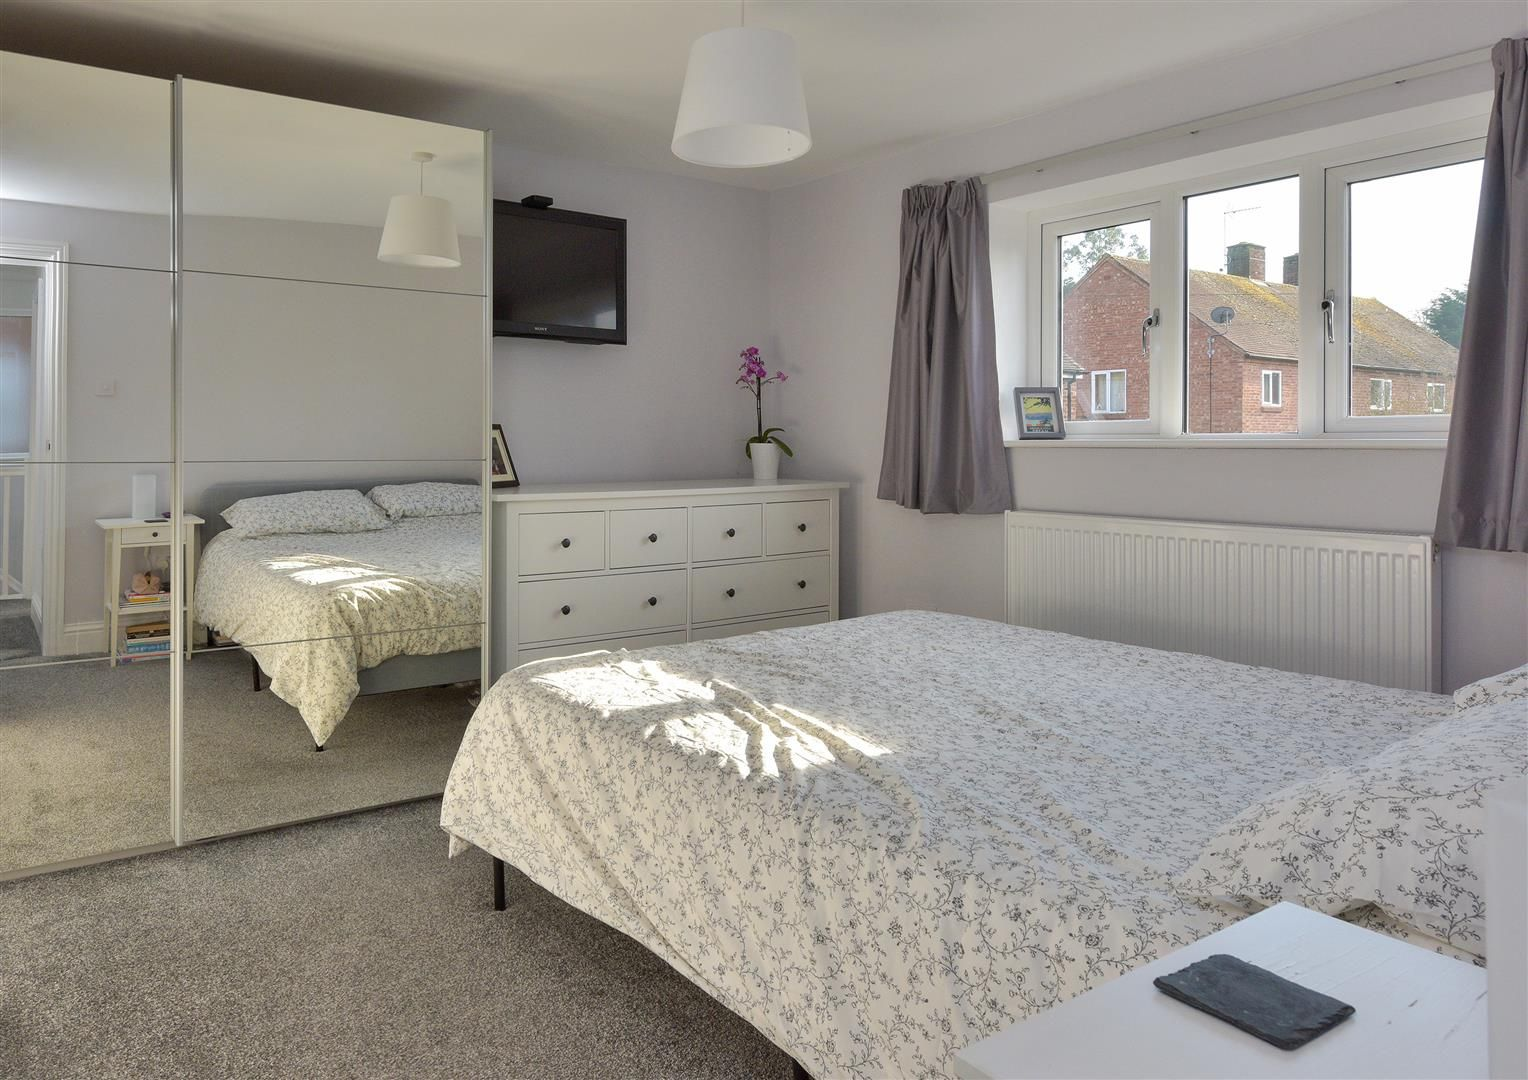 3 bed house for sale in Clent  - Property Image 14